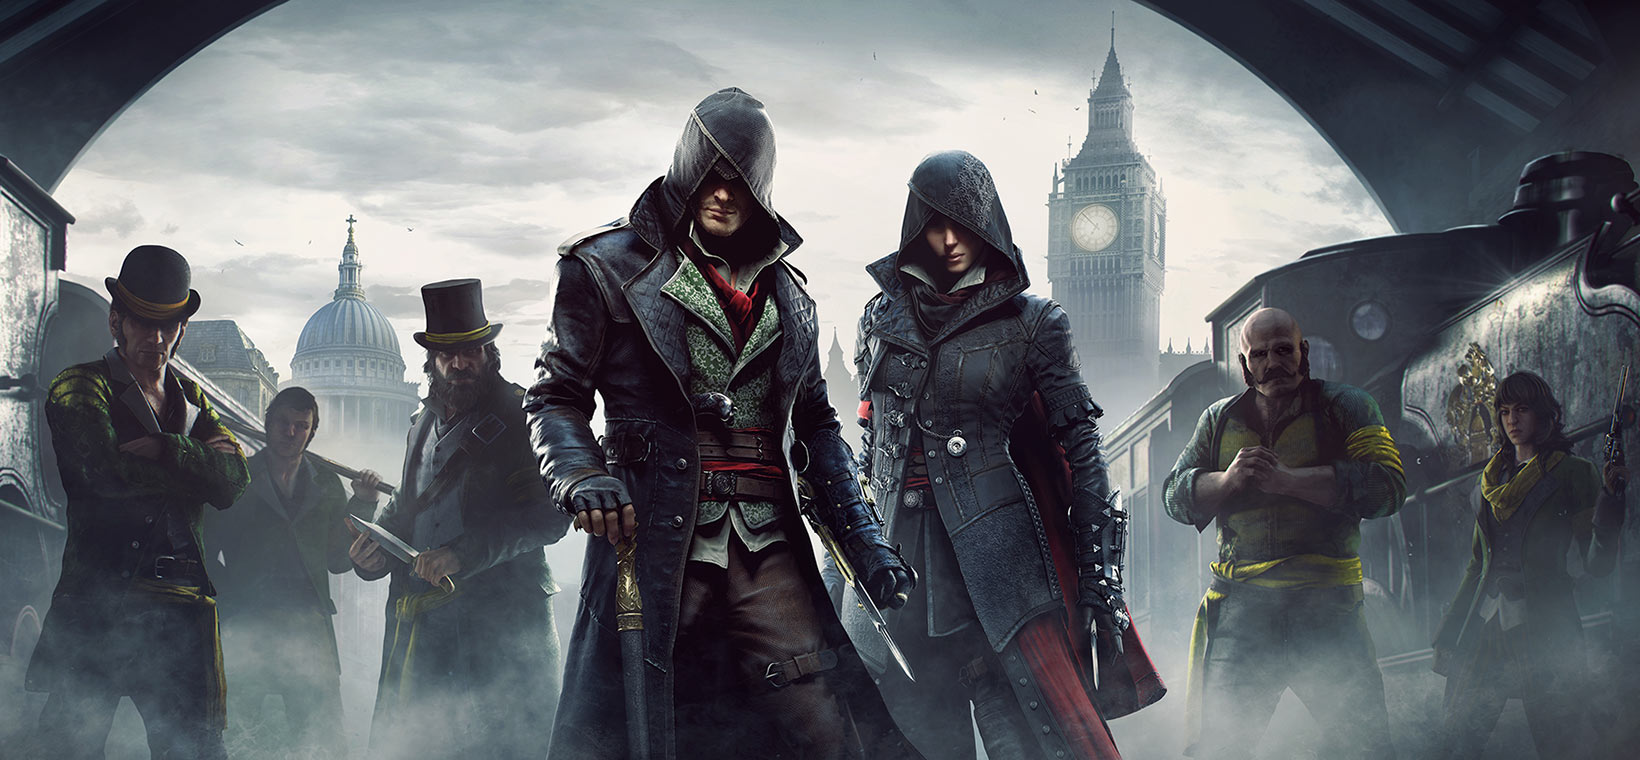 Assasin's Creed: Syndicate